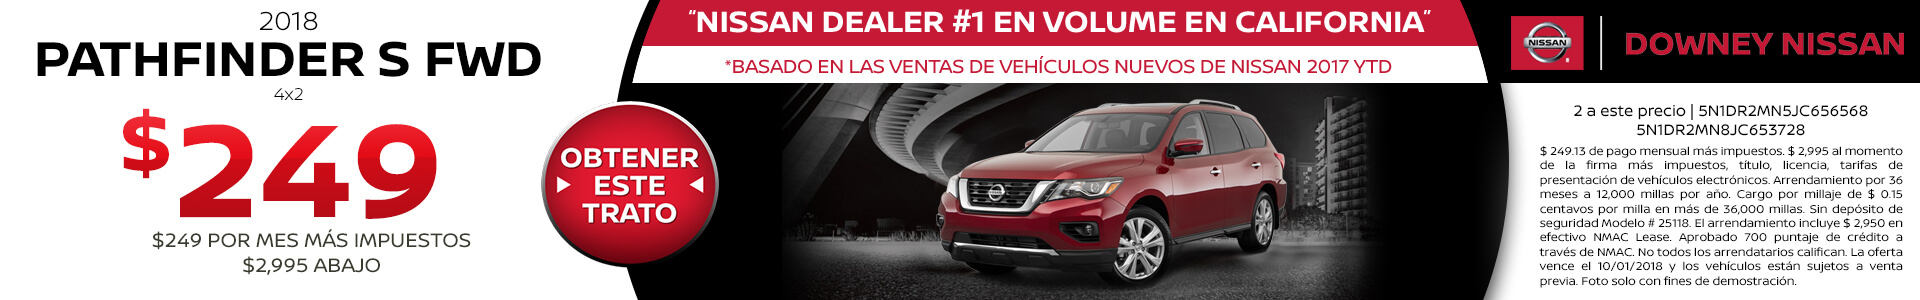 Pathfinder - Lease for $249